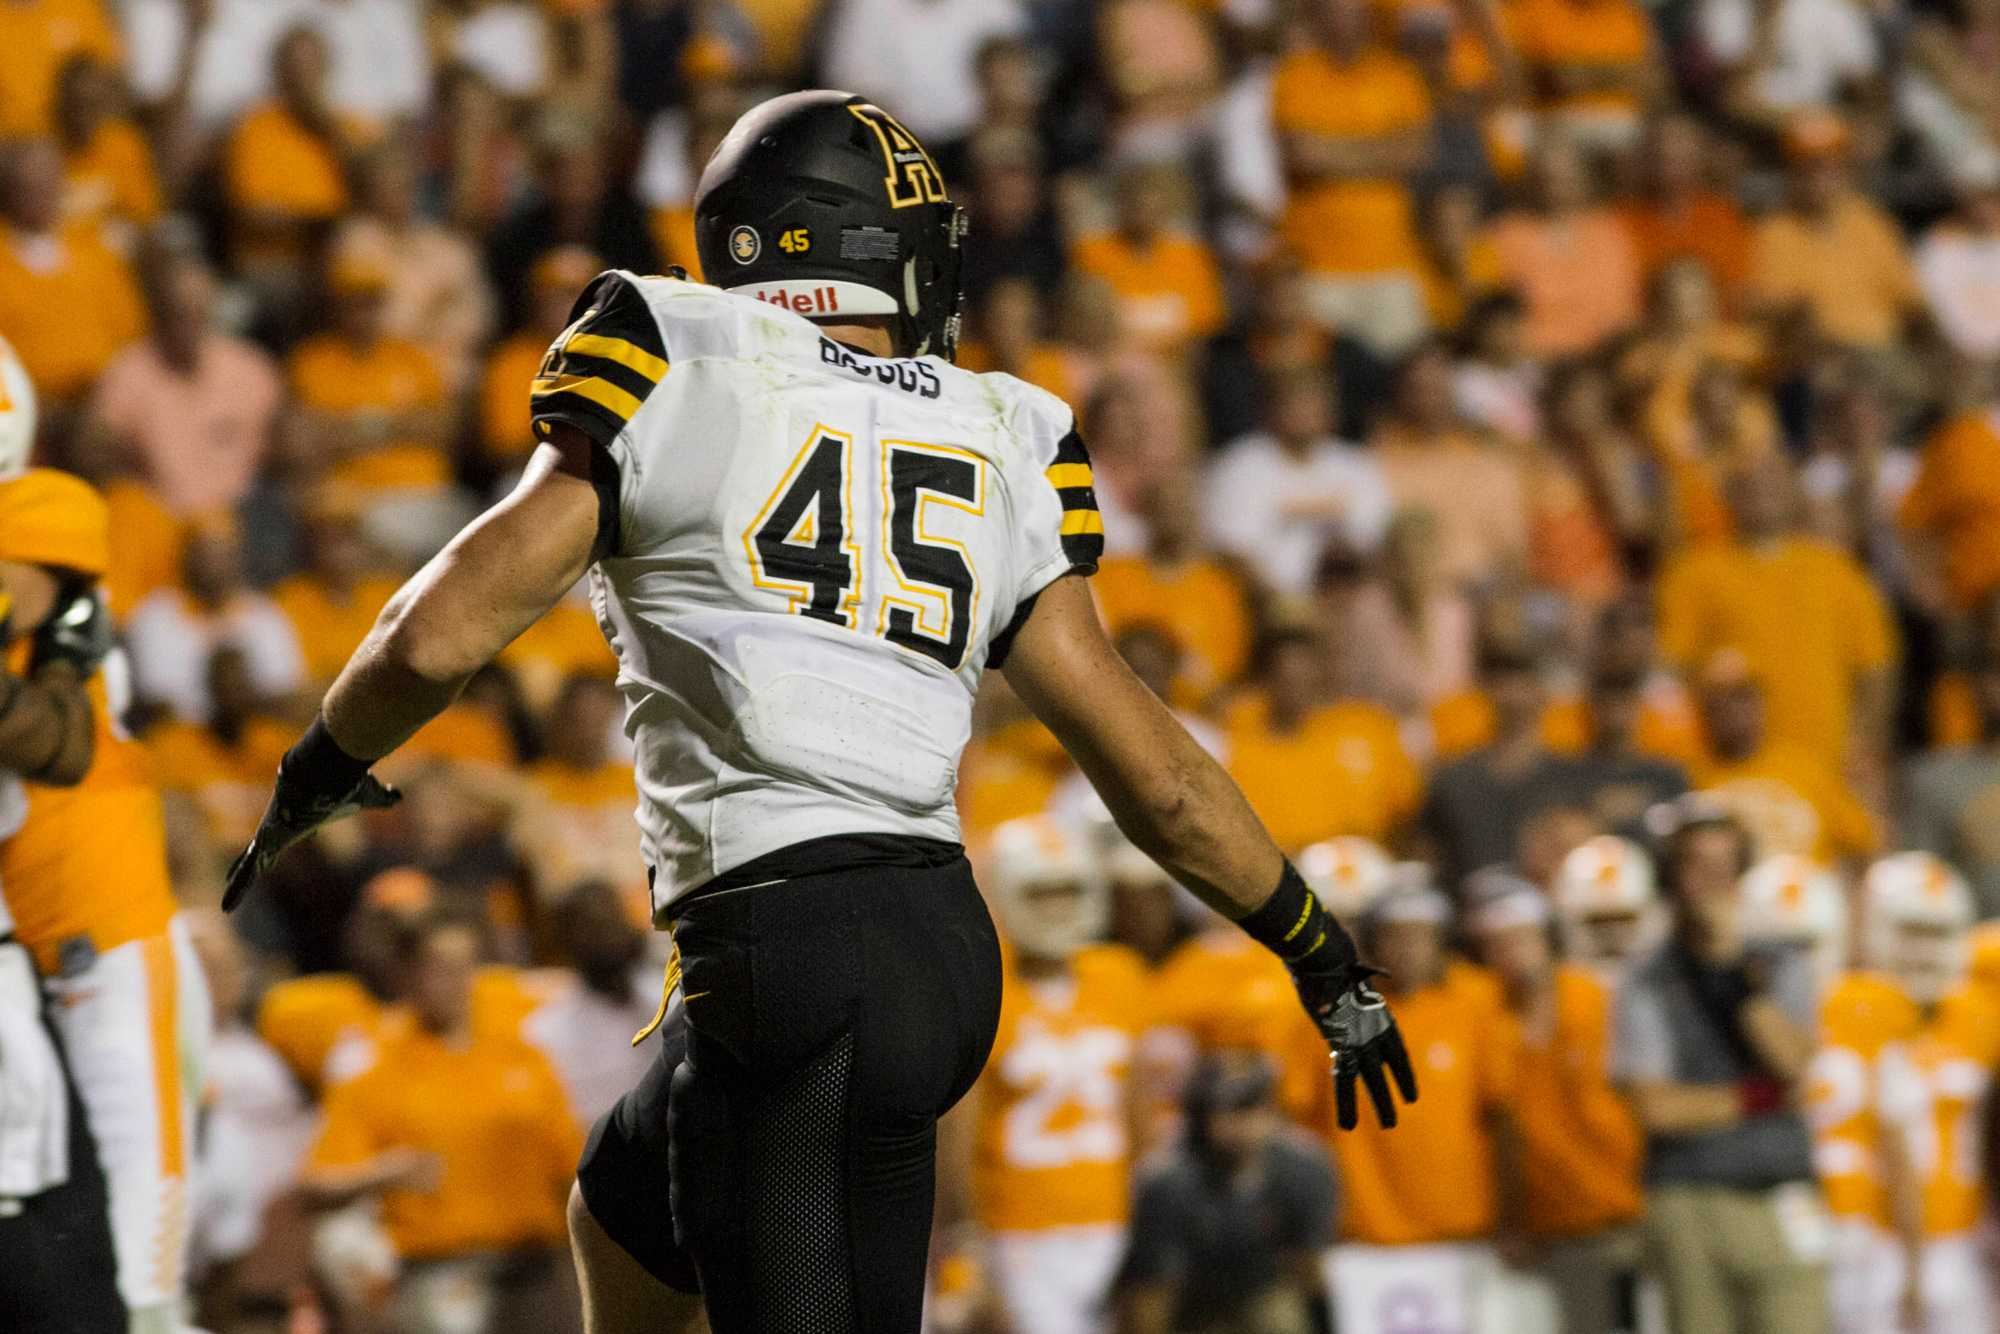 A force to be reckoned with: A look at App's linebackers